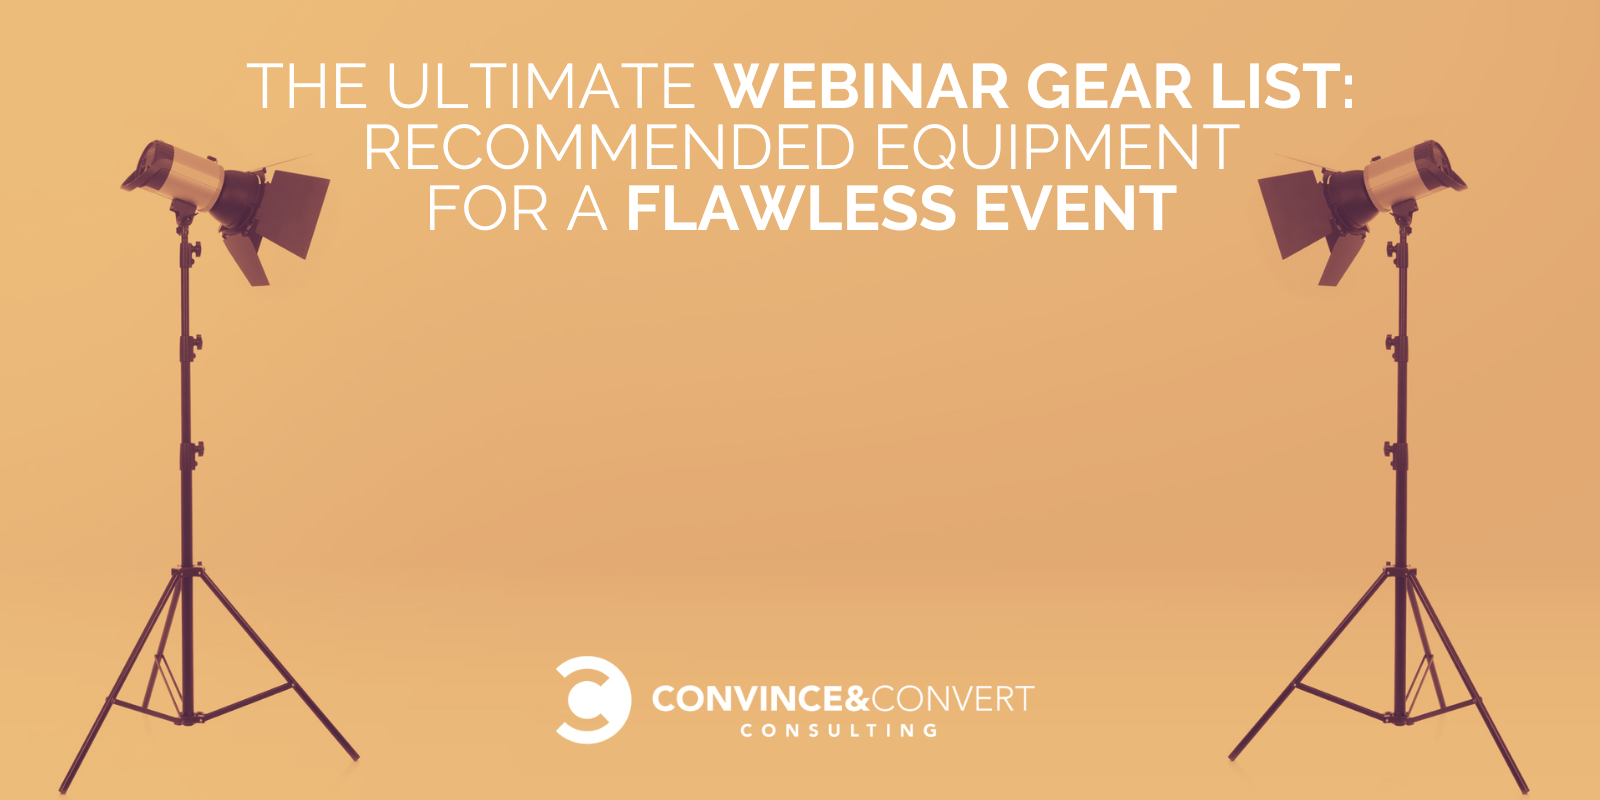 The Final Webinar Instruments List: Instructed Instruments for a Flawless Tournament